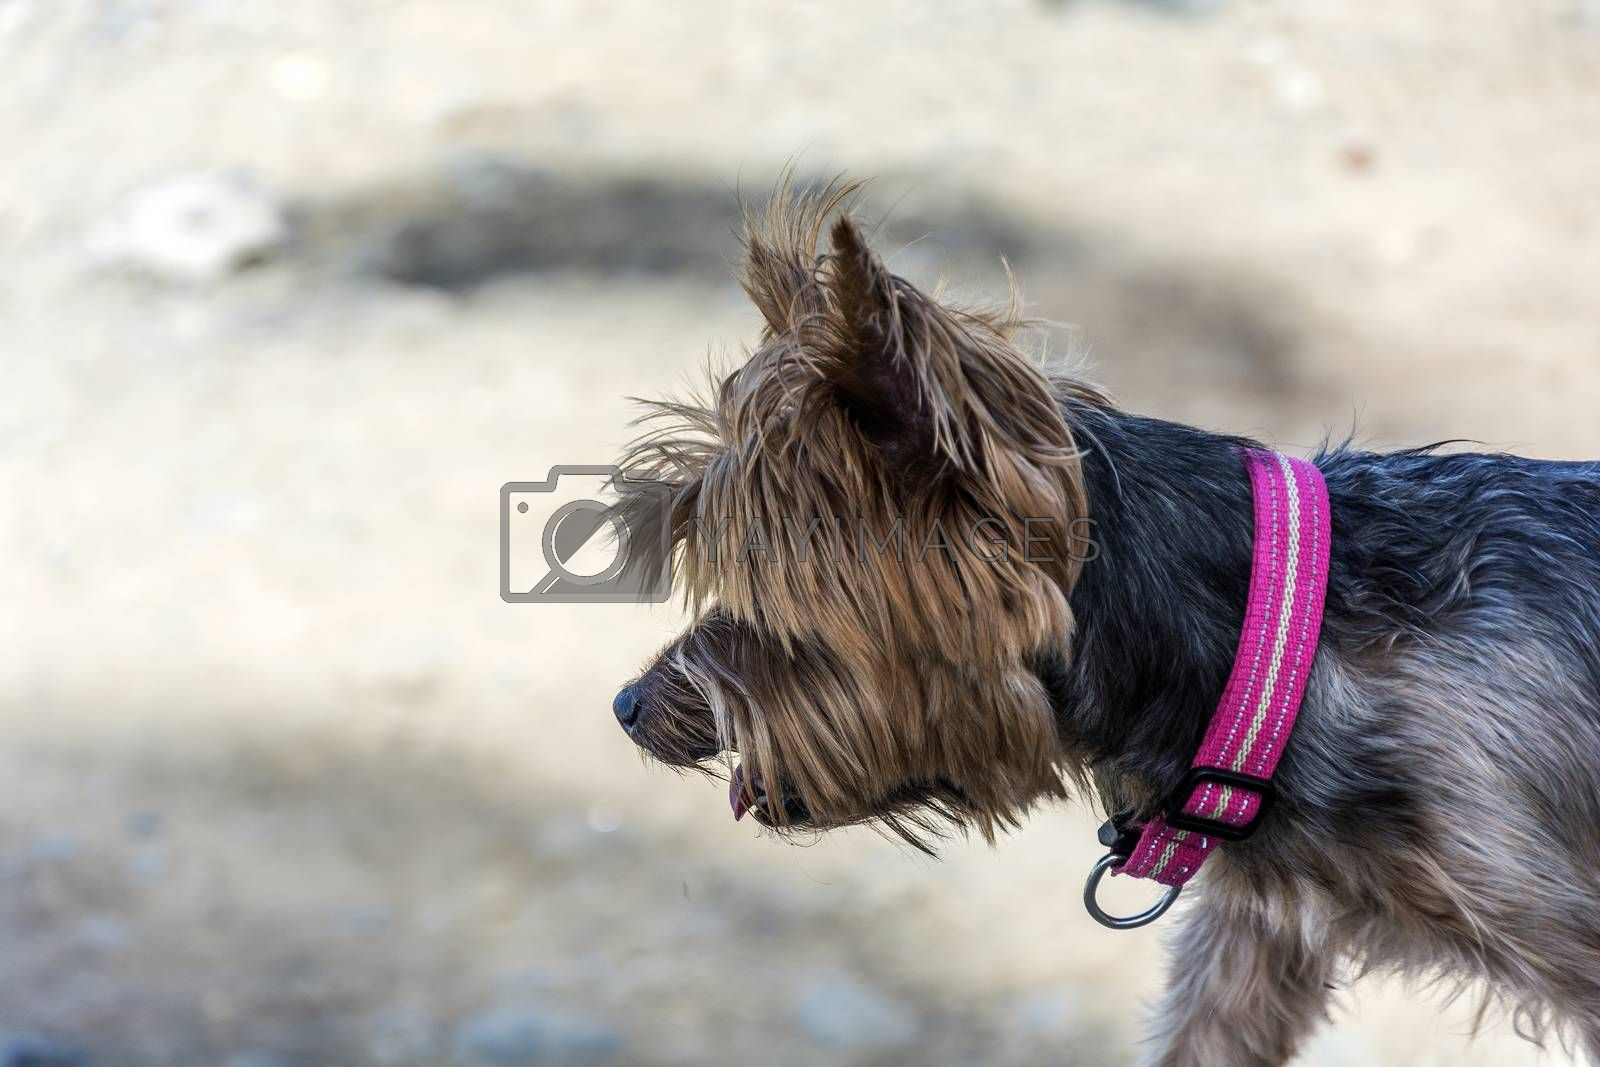 Home terrier dog walking on the street. At the dog wearing a pink collar.